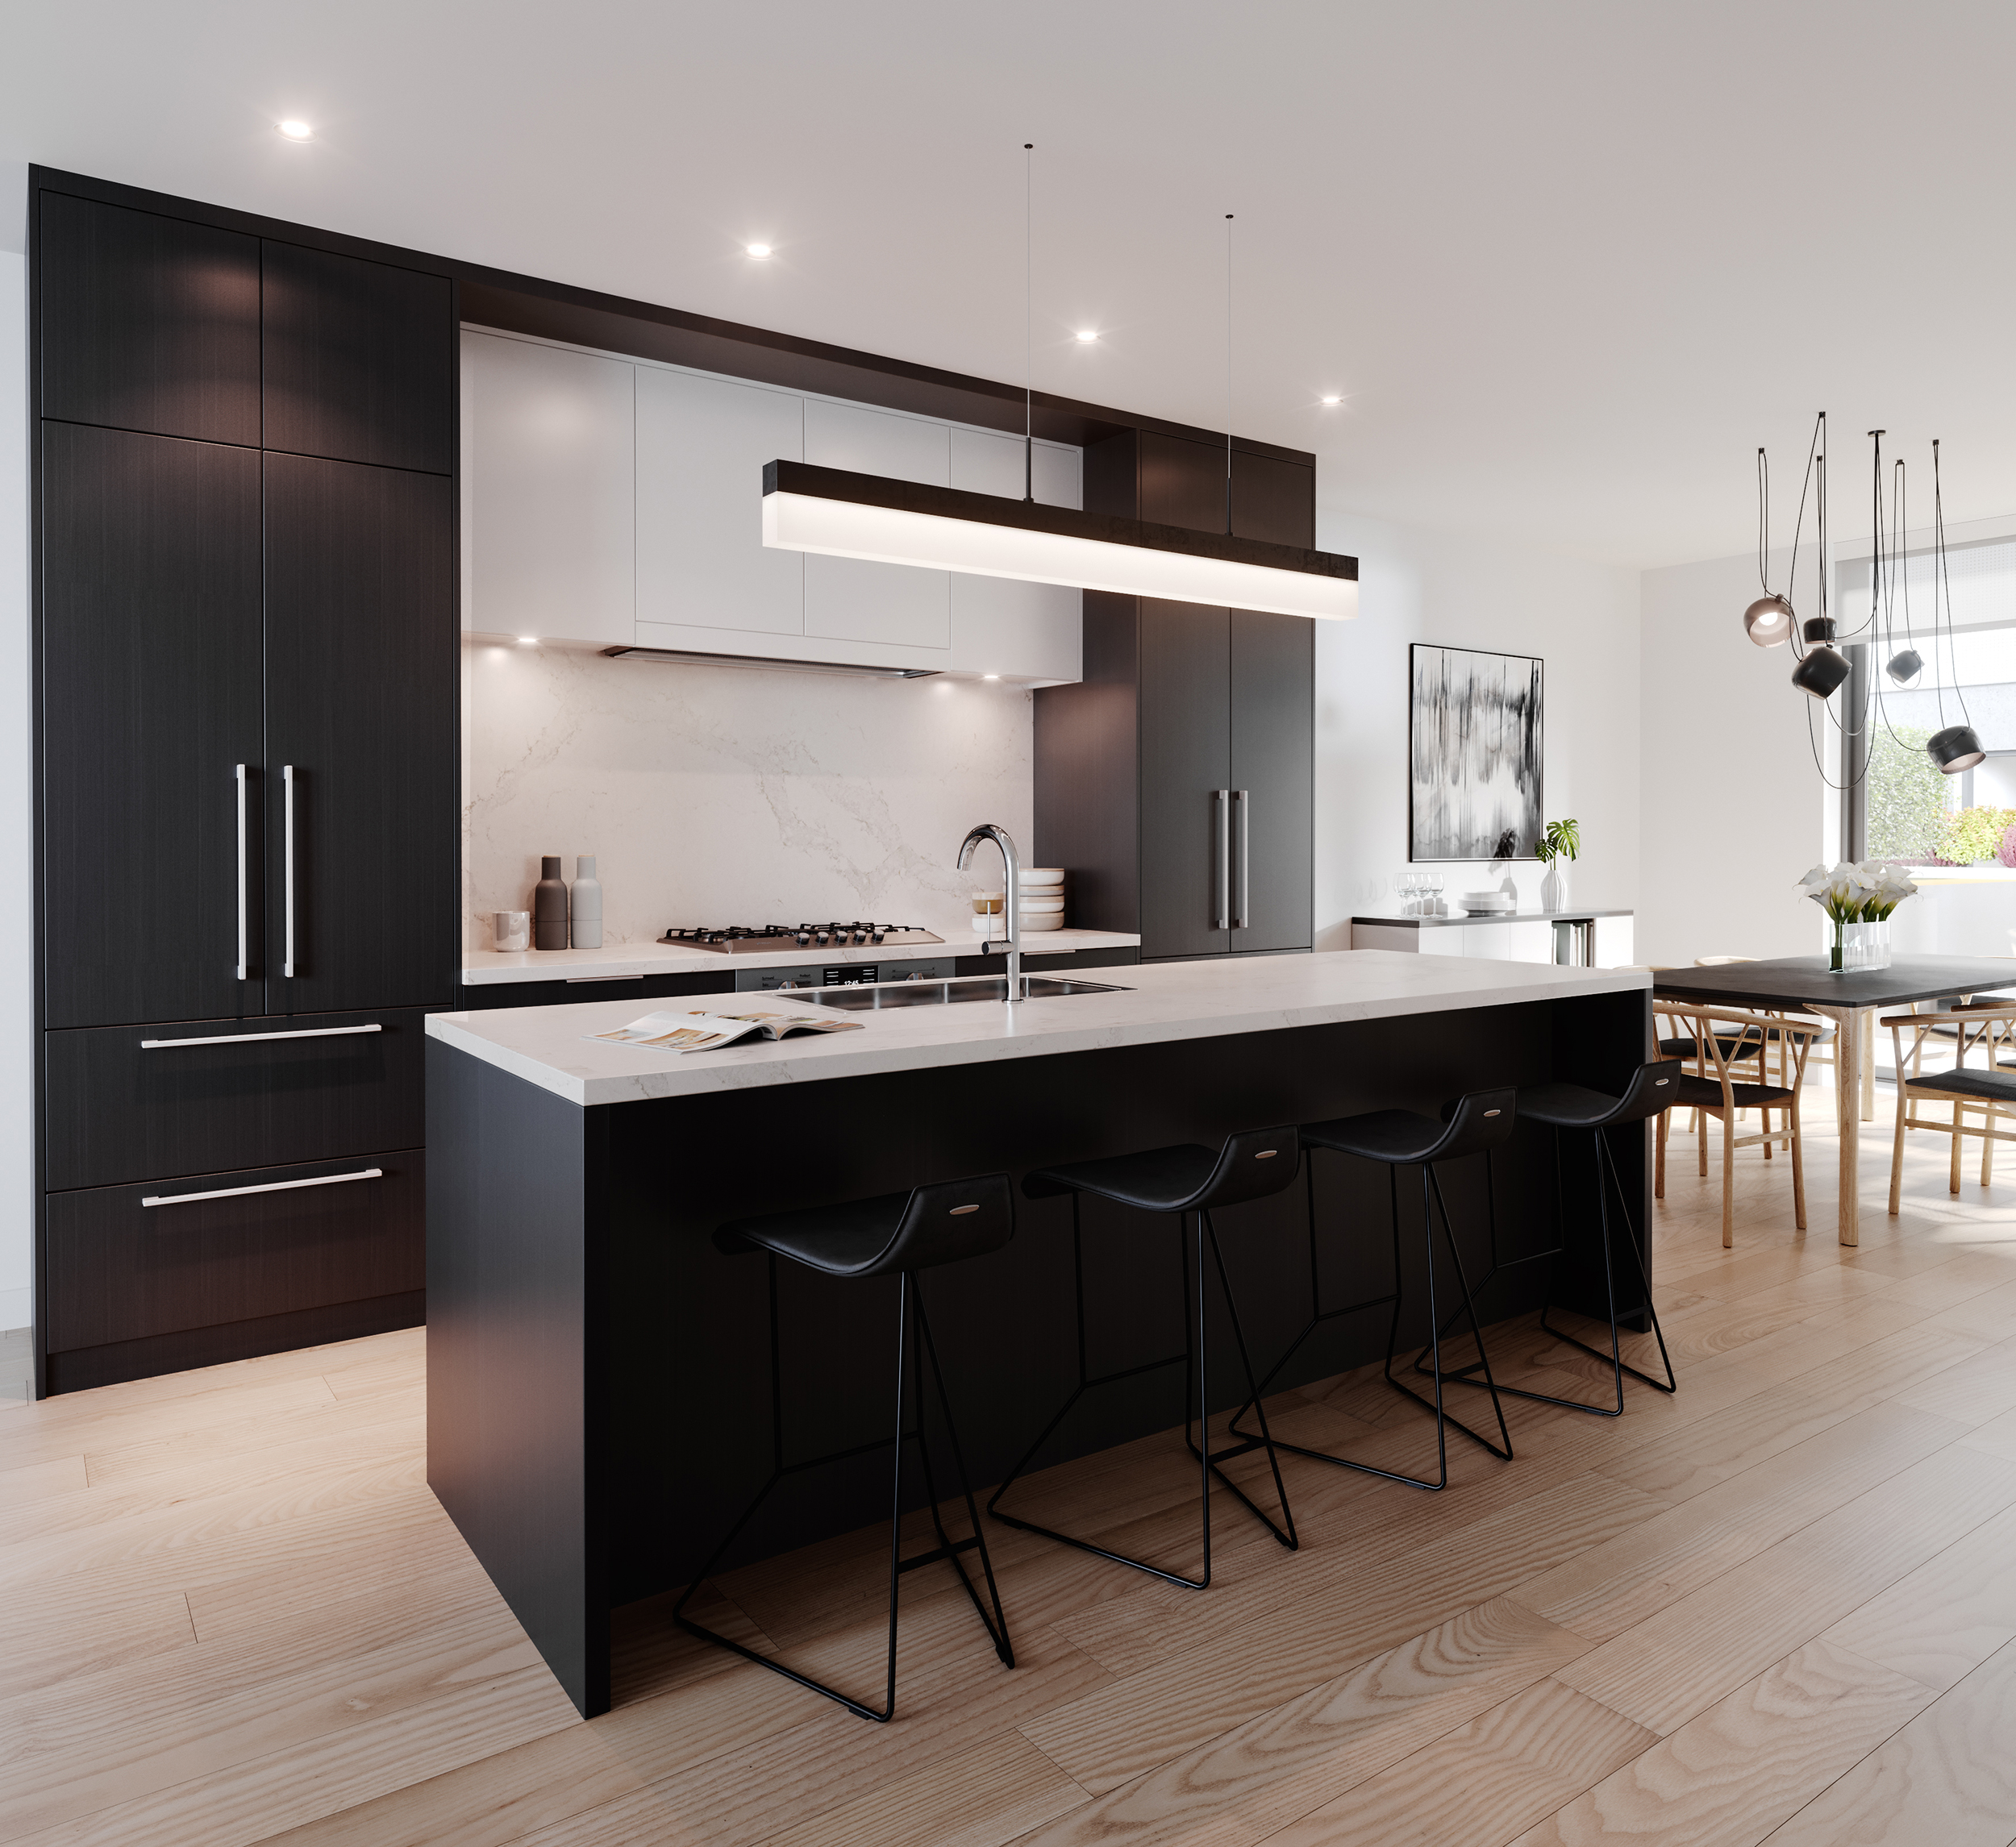 Kitchen_Scheme_2_Dark_Wood.jpg